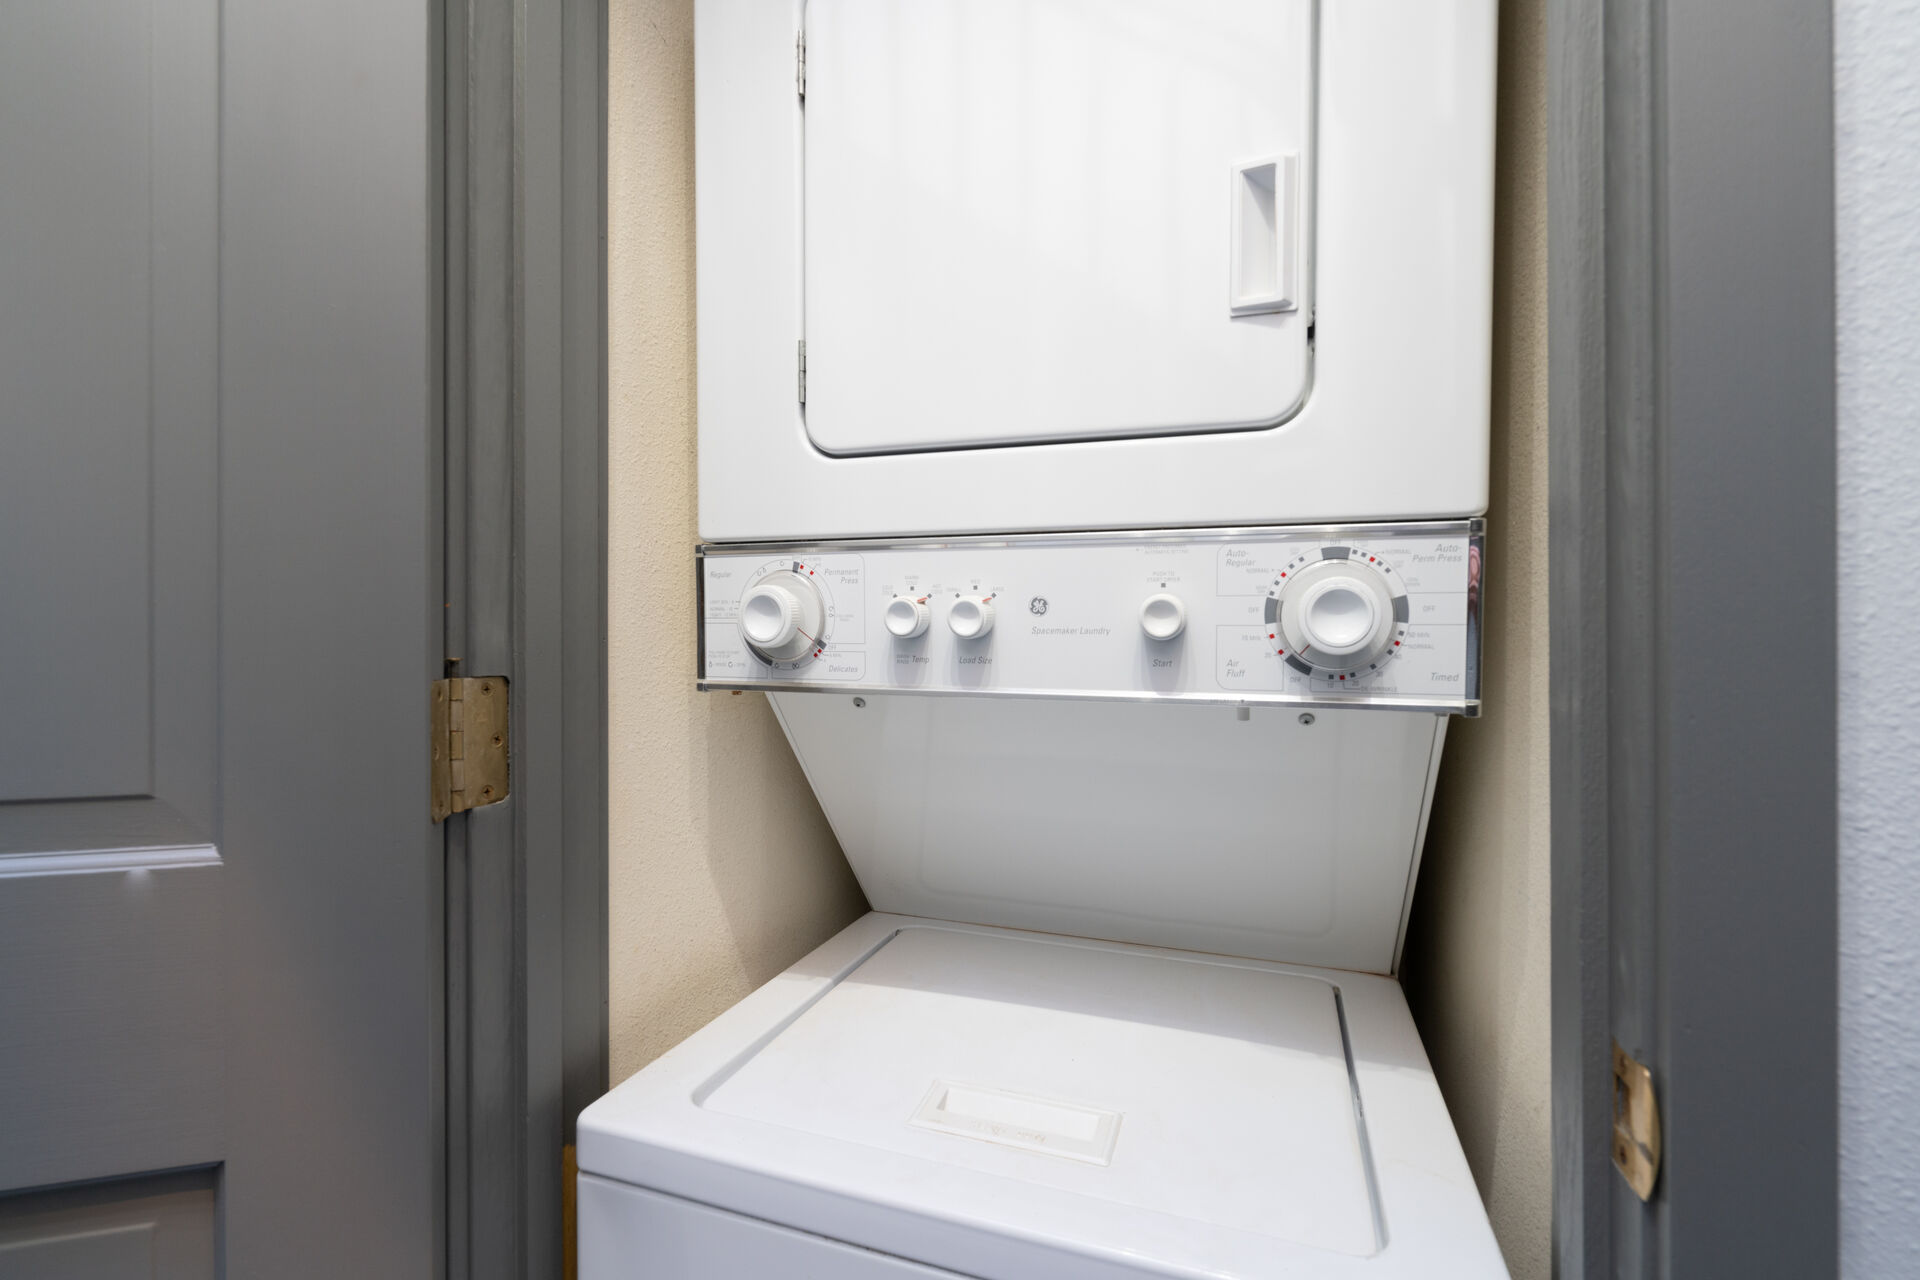 a washer/dryer unit